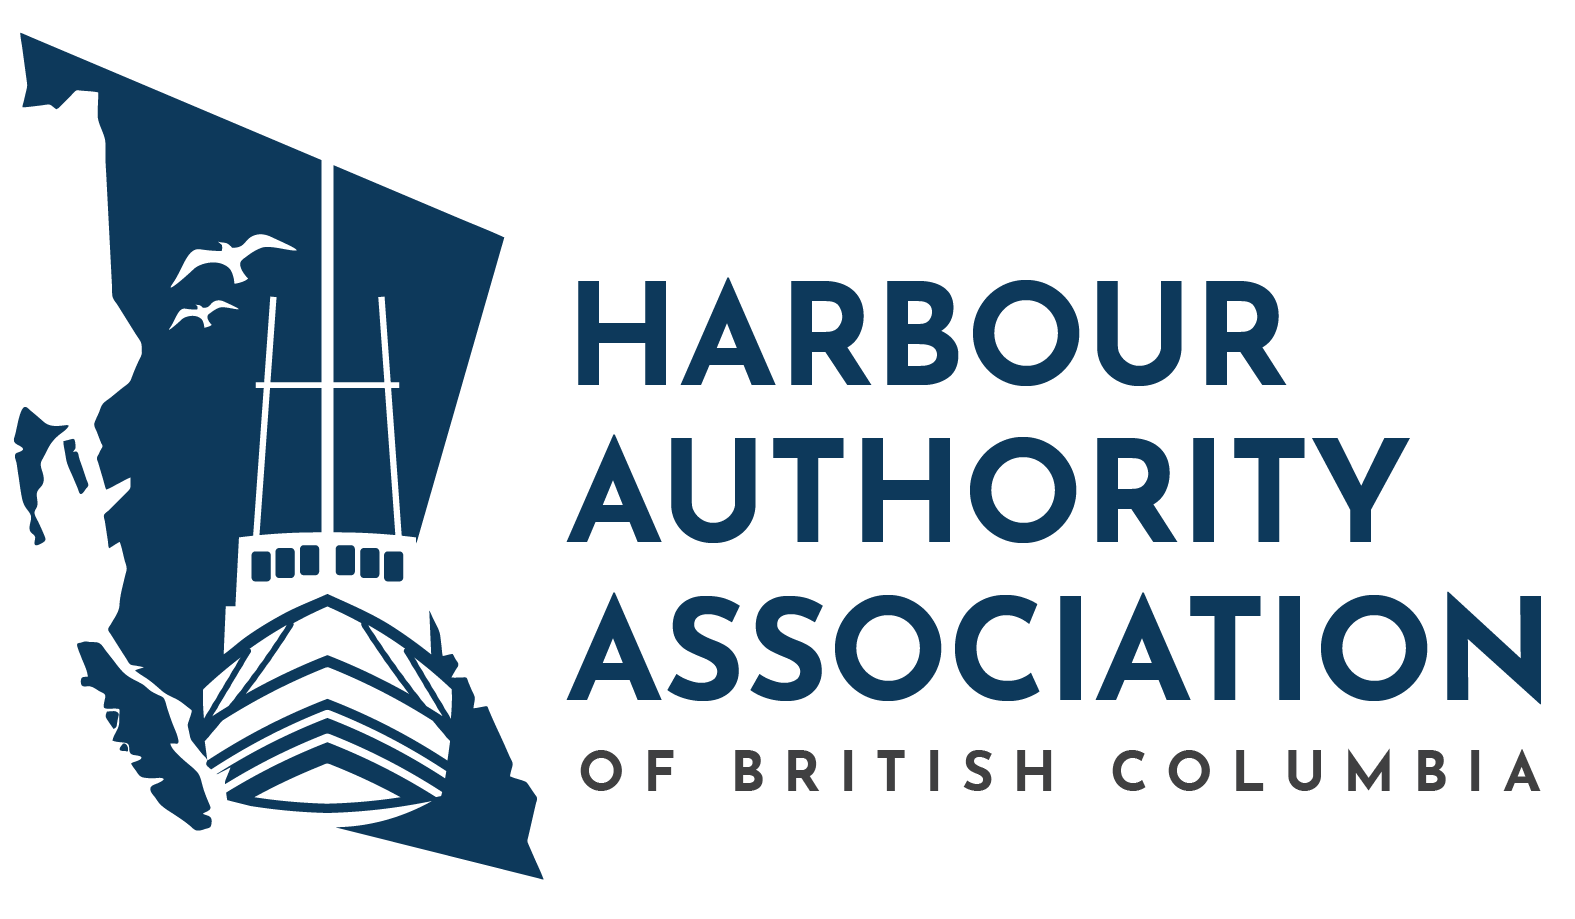 Harbour Authority Association of British Columbia